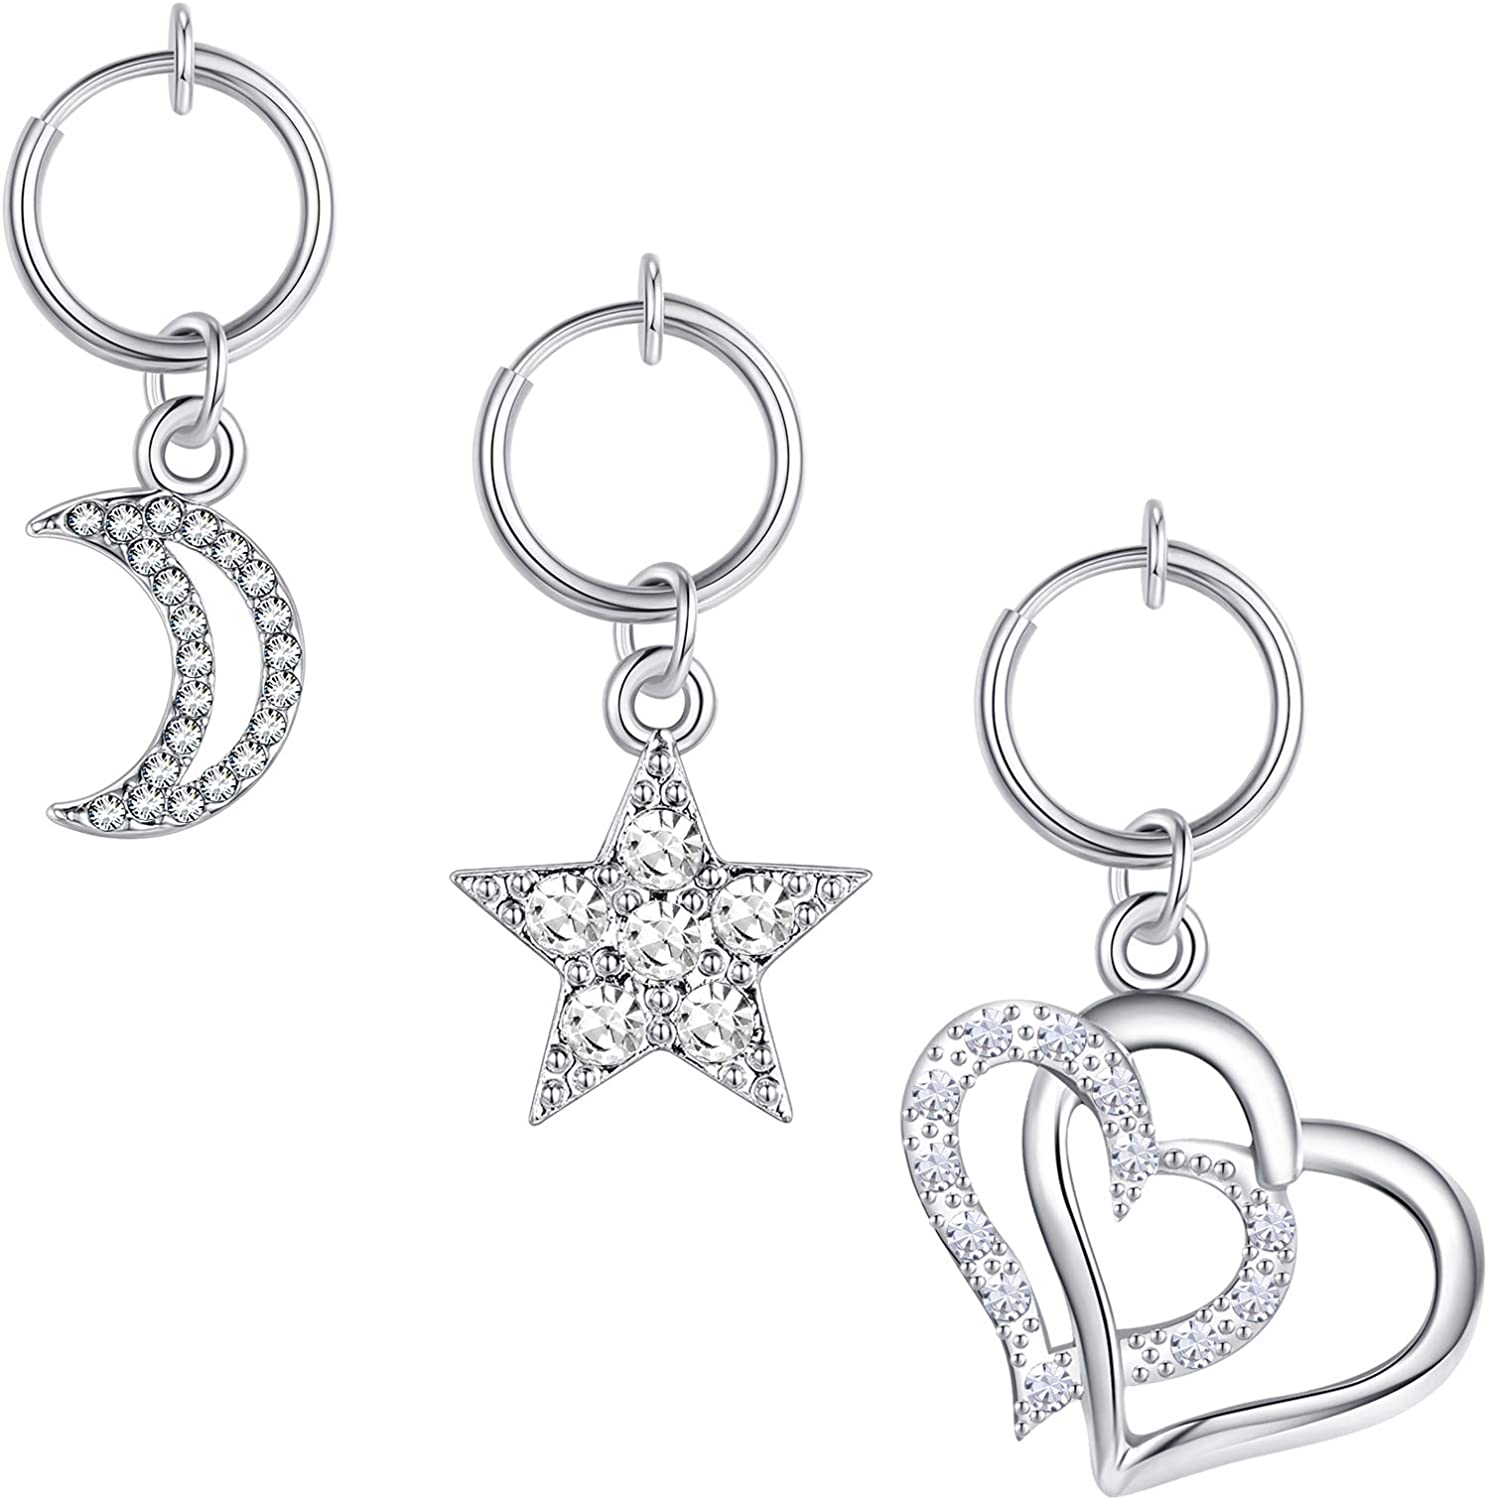 MODRSA Clip on Belly Button Rings Fake Belly Piercing Fake Belly Rings Non Piercing Navel Ring